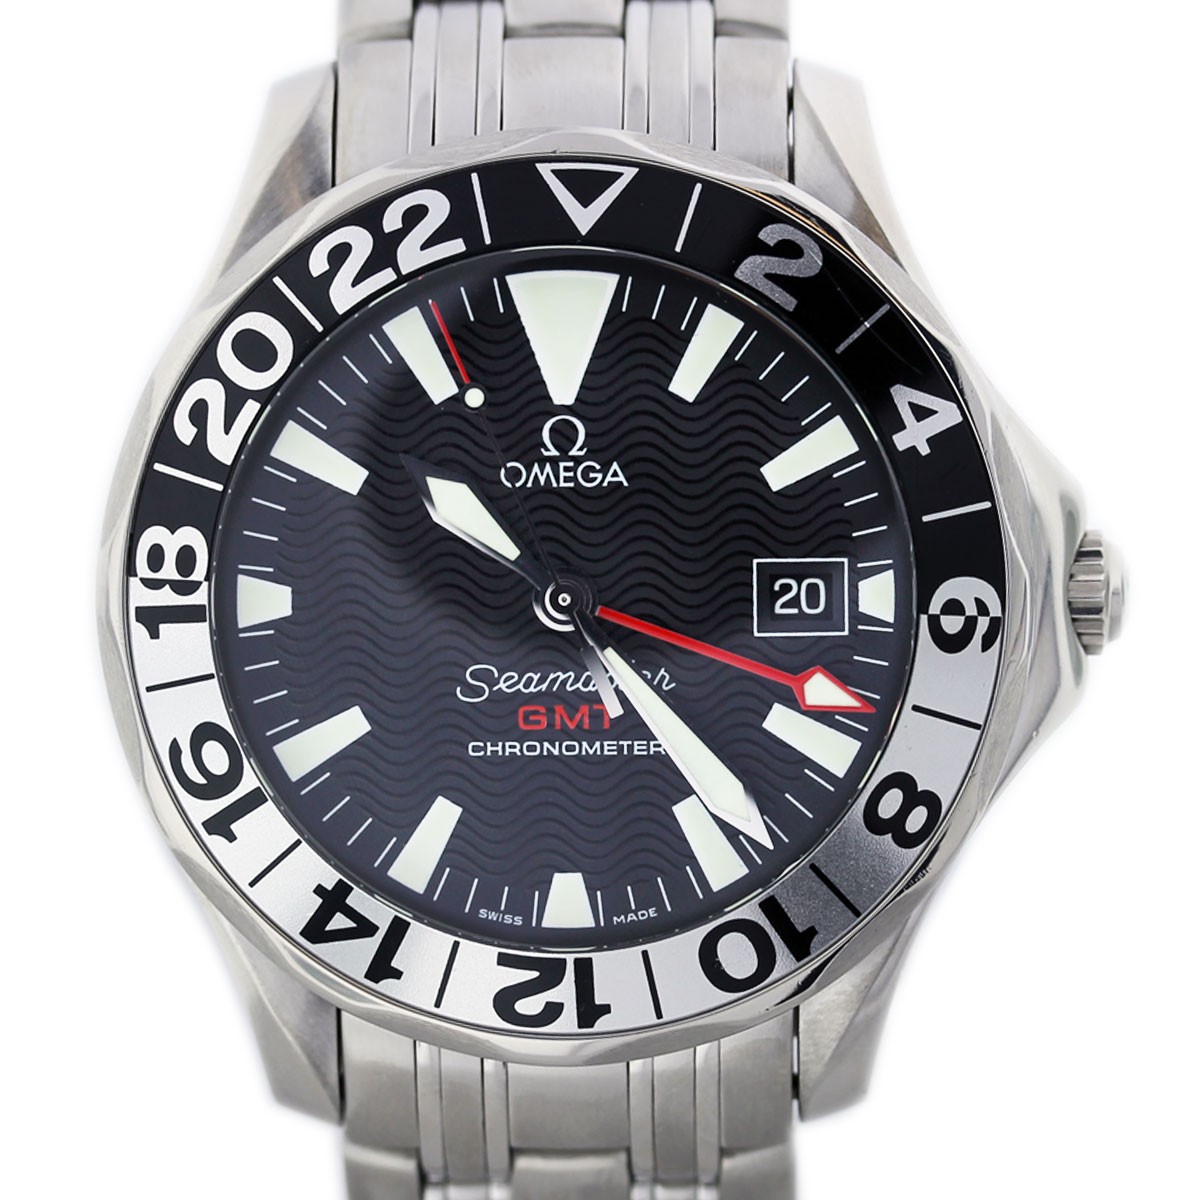 Omega Seamaster 253450 GMT 50th Anniversary Edition Watch